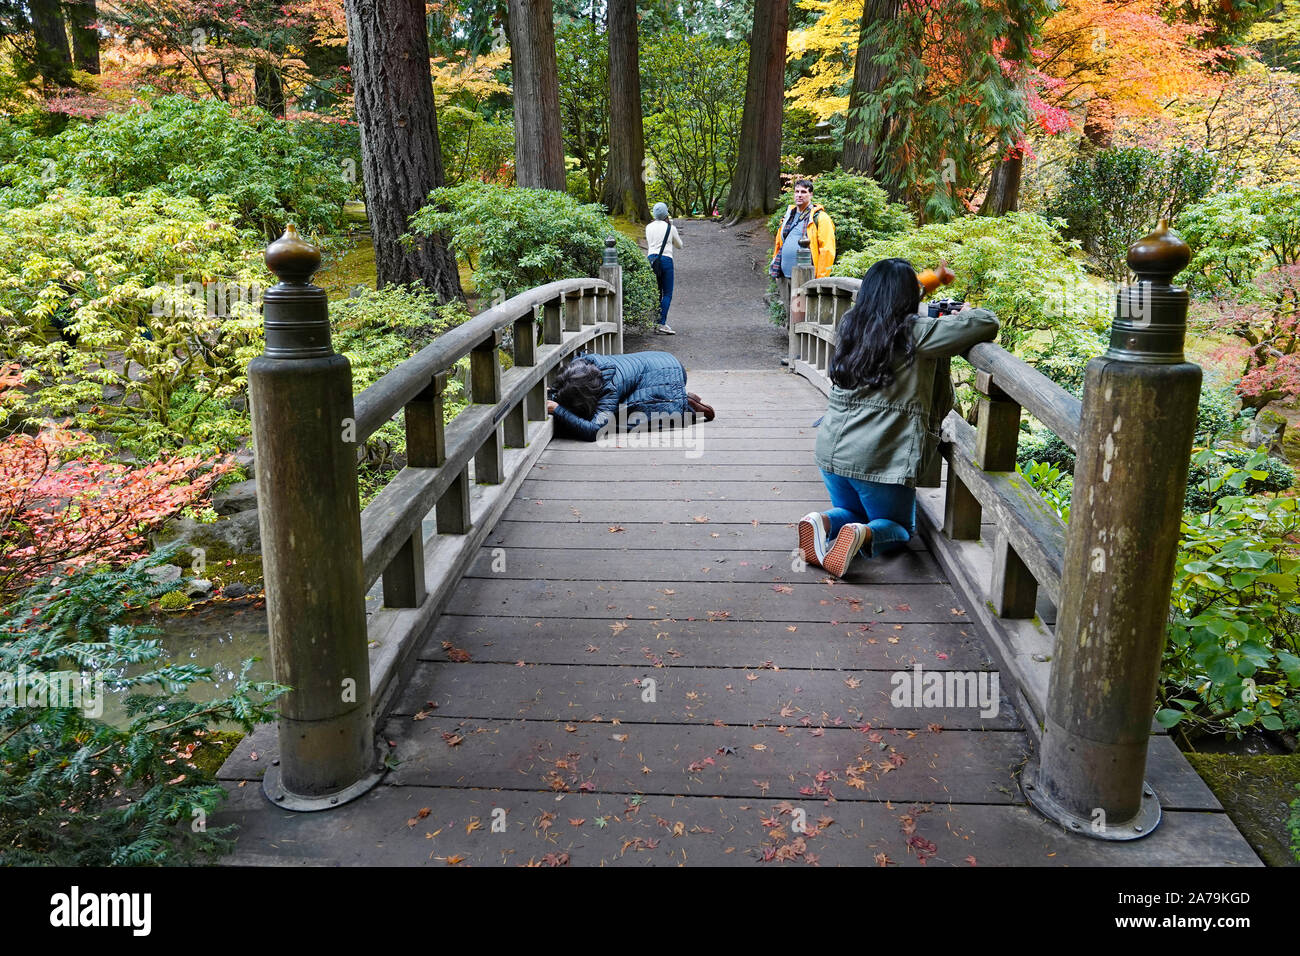 Photographers photographing the Maple trees and other exotic deciduous trees turning yellow and red in the world famous Japanese Gardens in Portland, Stock Photo